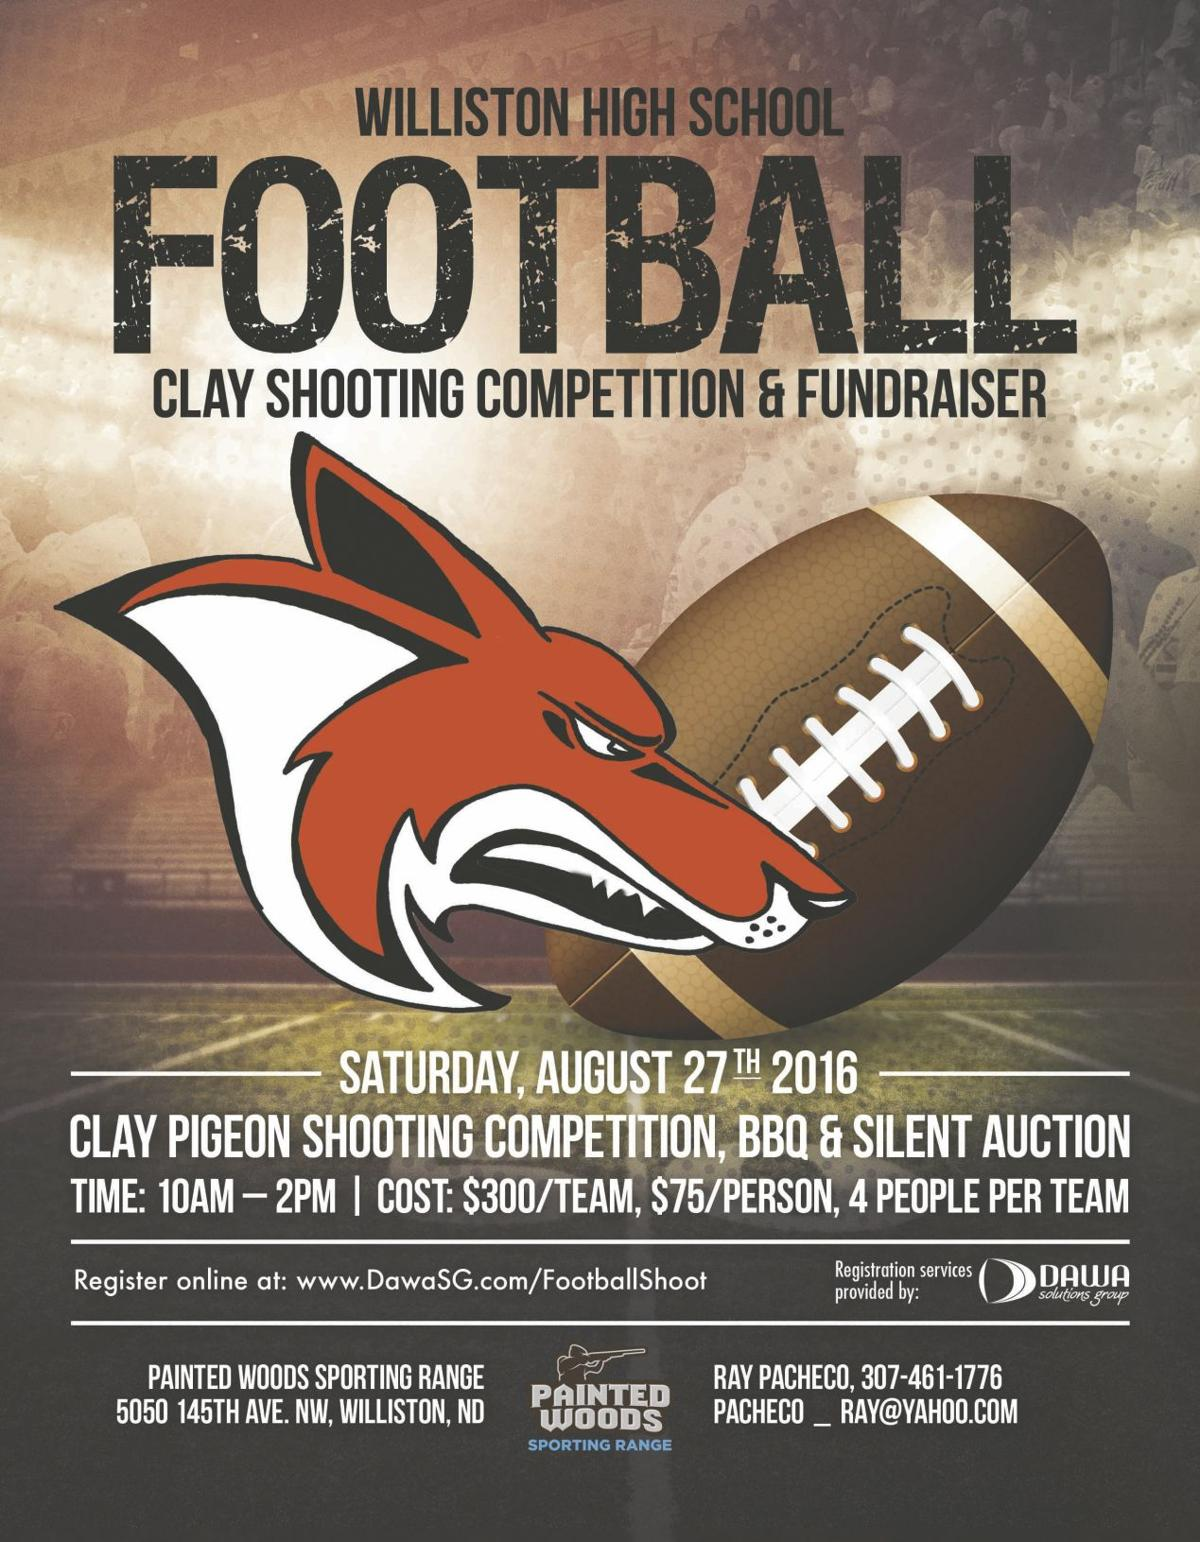 coyote football parents set sights on fundraising goals